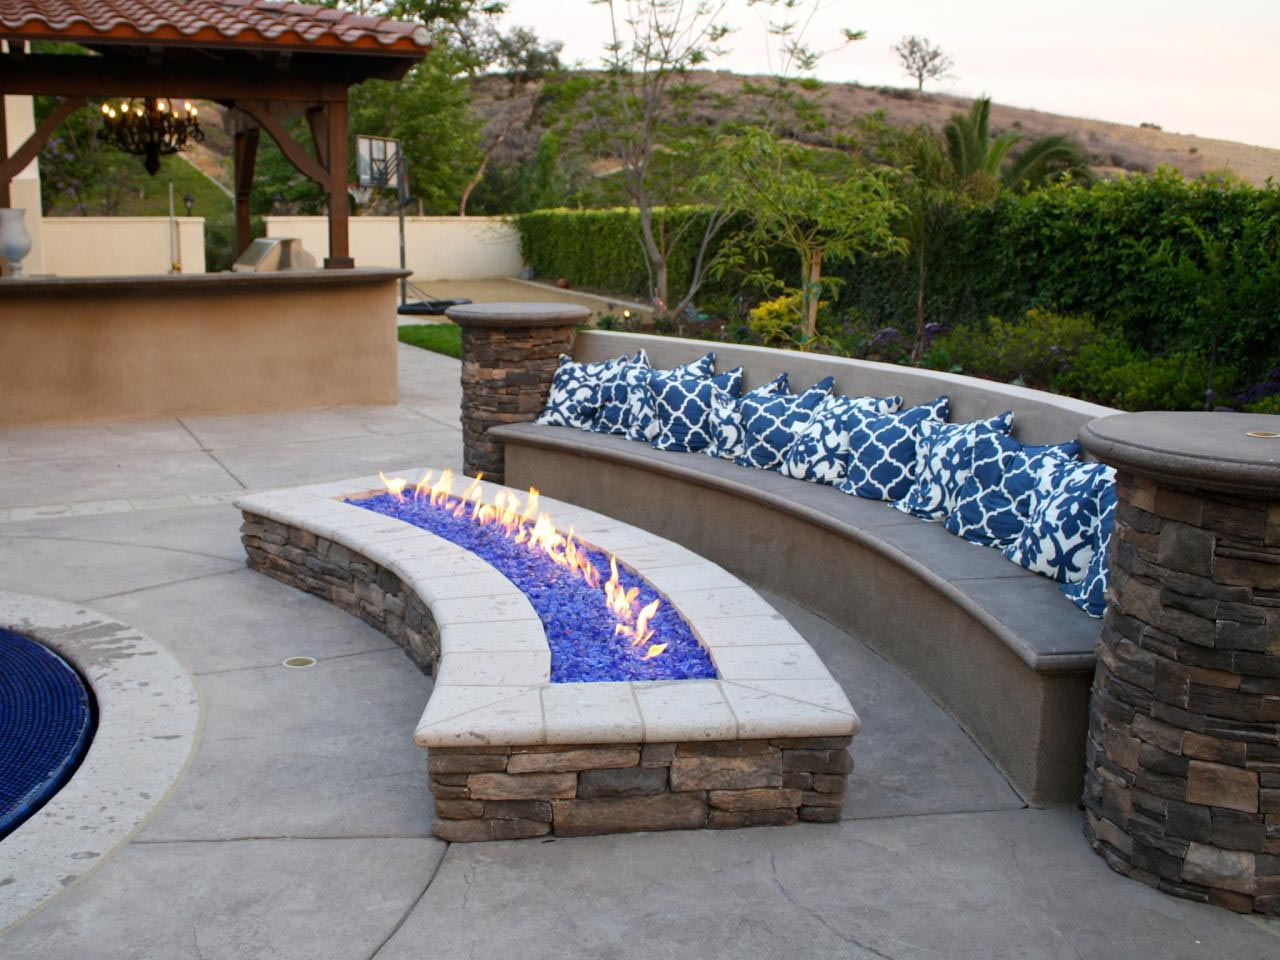 Outdoor Fire Pit With Glass Rocks Fire Pit Design Ideas within dimensions 1280 X 960